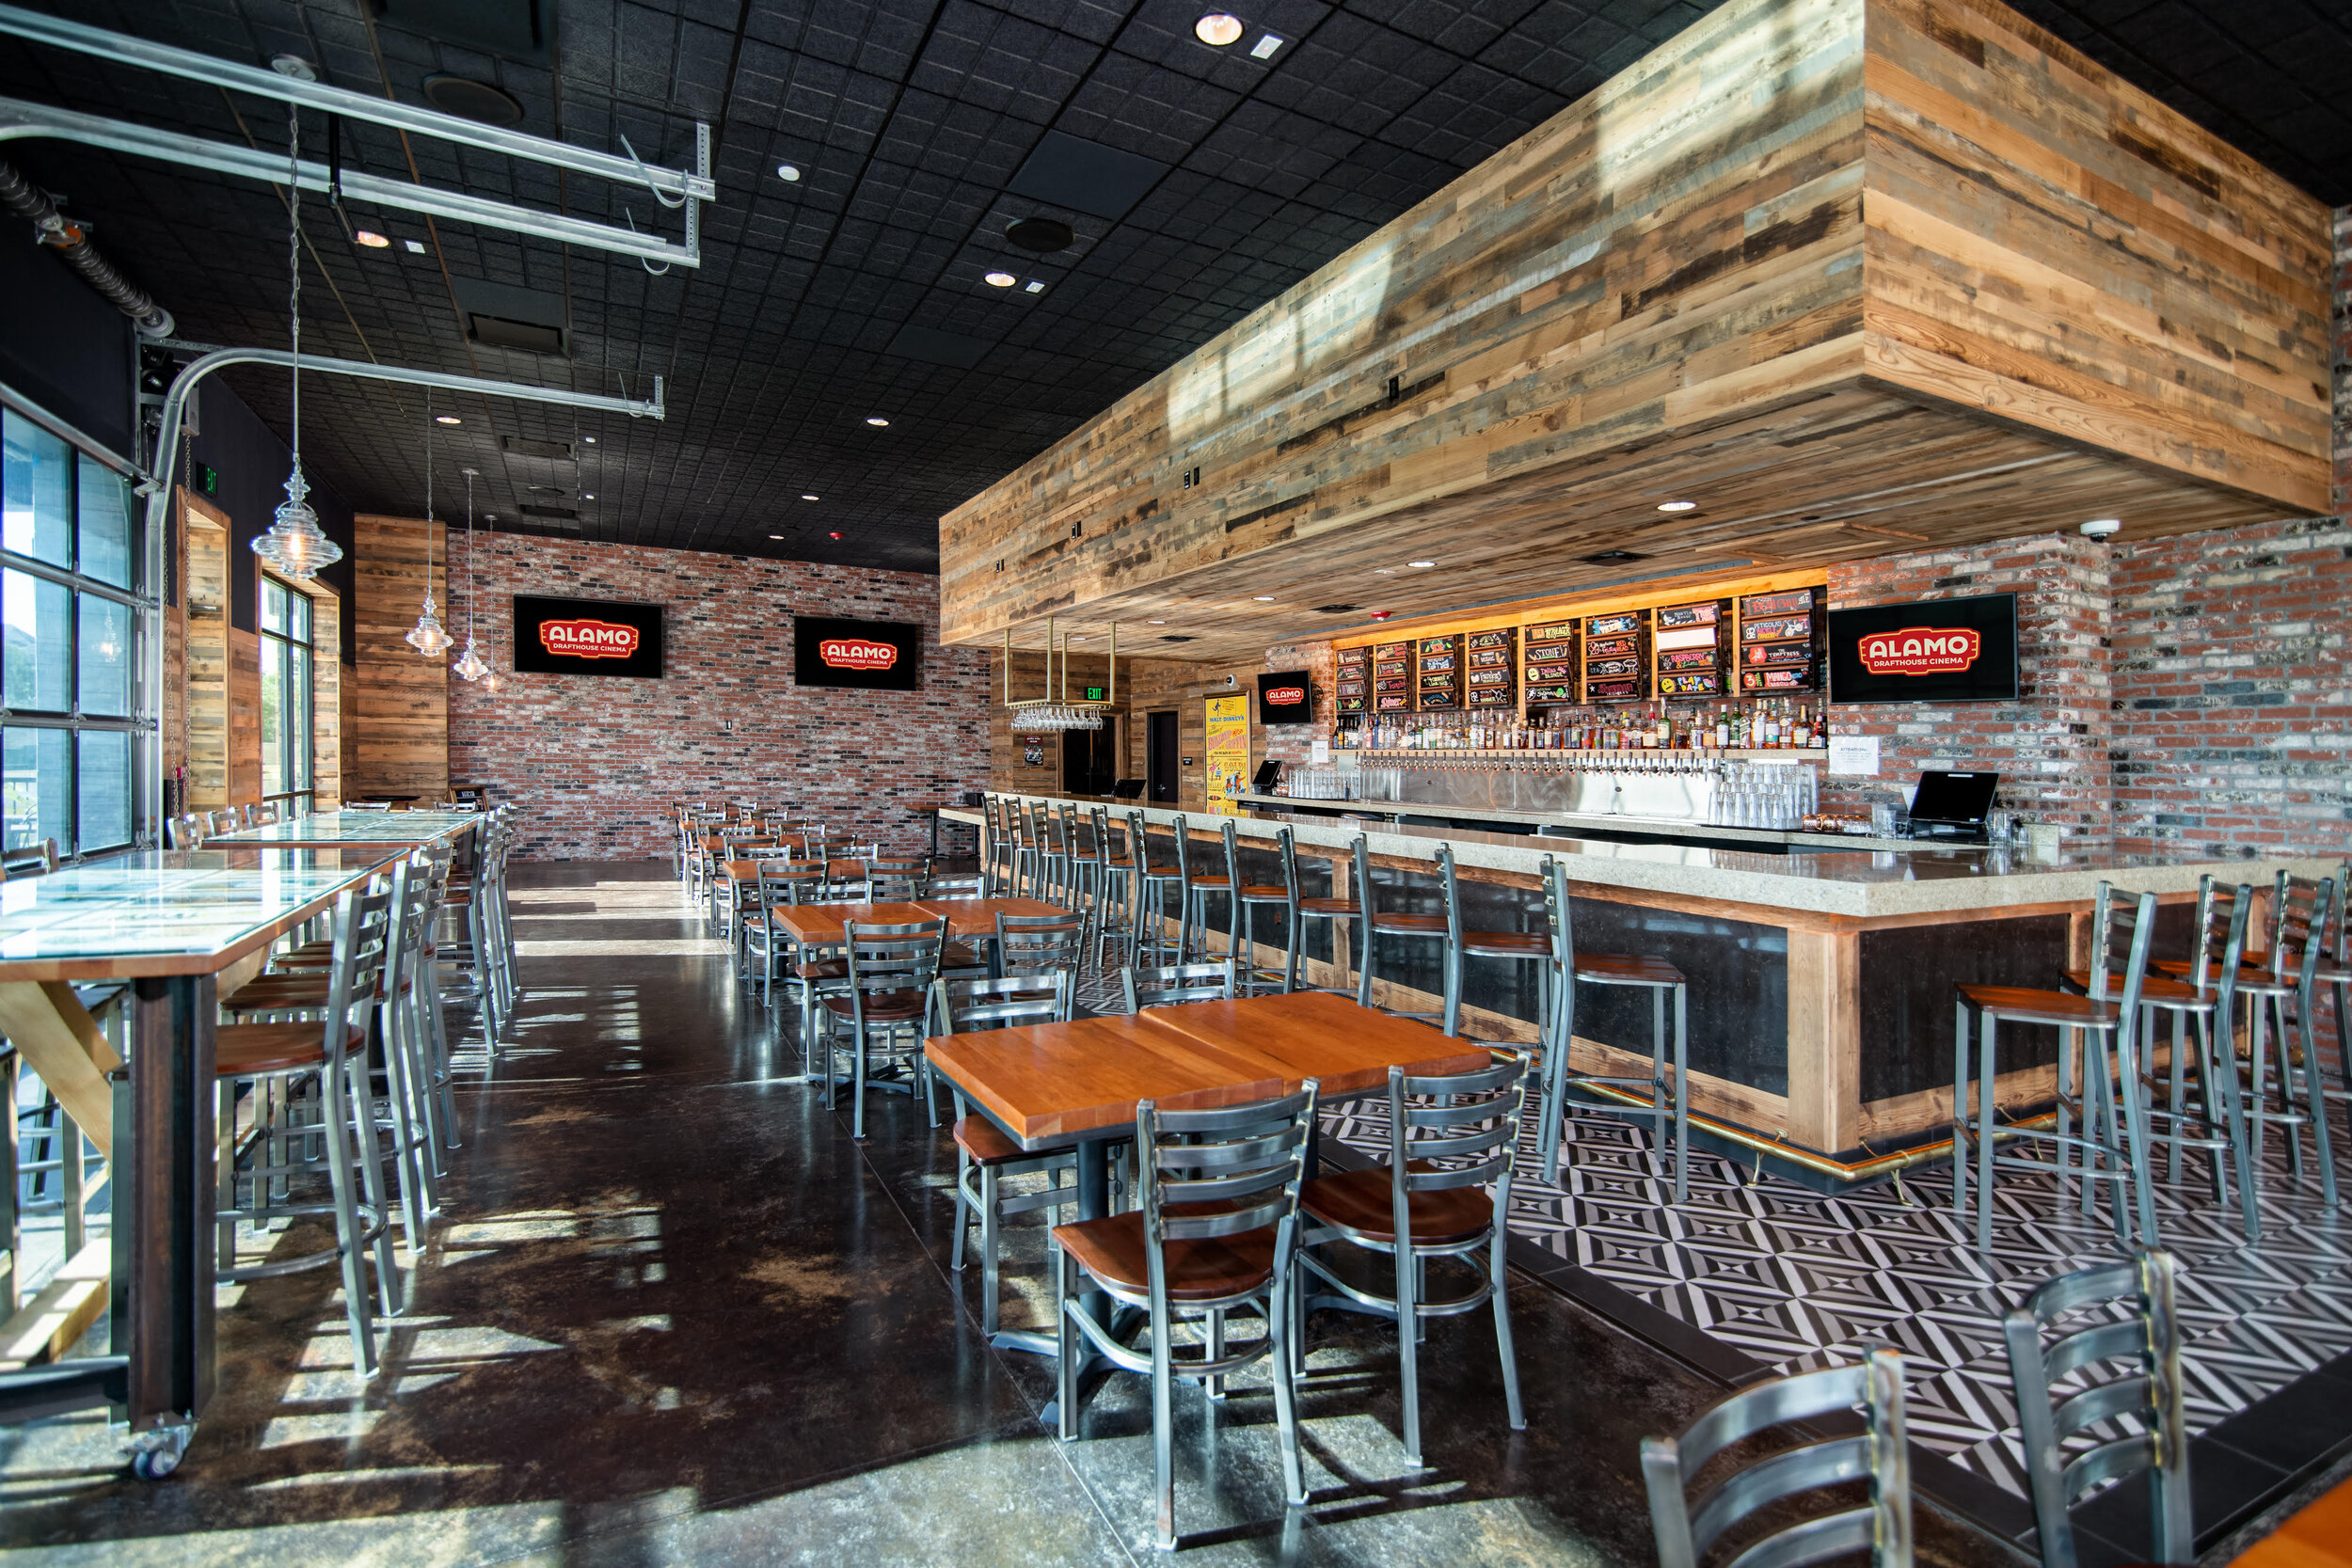 Alamo Drafthouse - NORTH RICHLAND HILLS, TXCompleted April, 2019